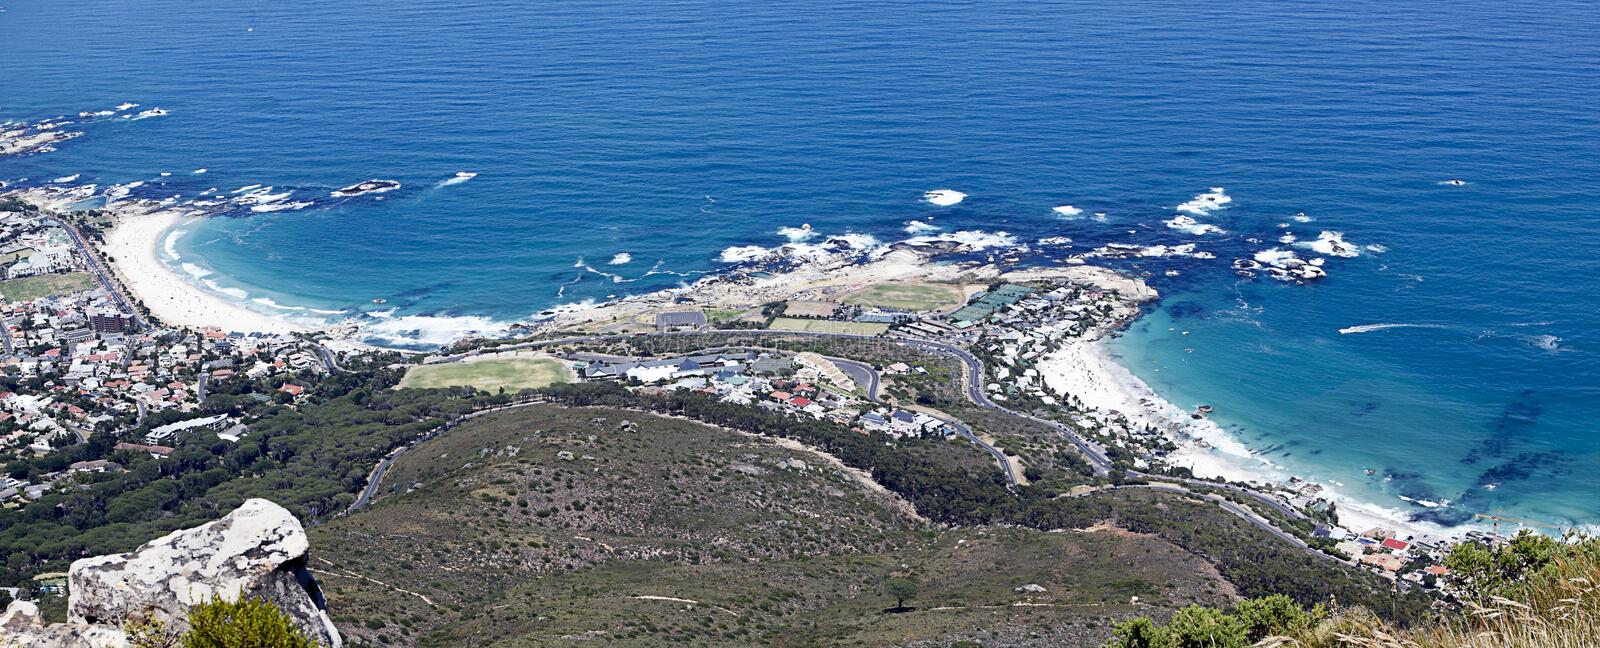 Download Clfiton and Camps bay stock image. Image of ocean, rock - 18587185